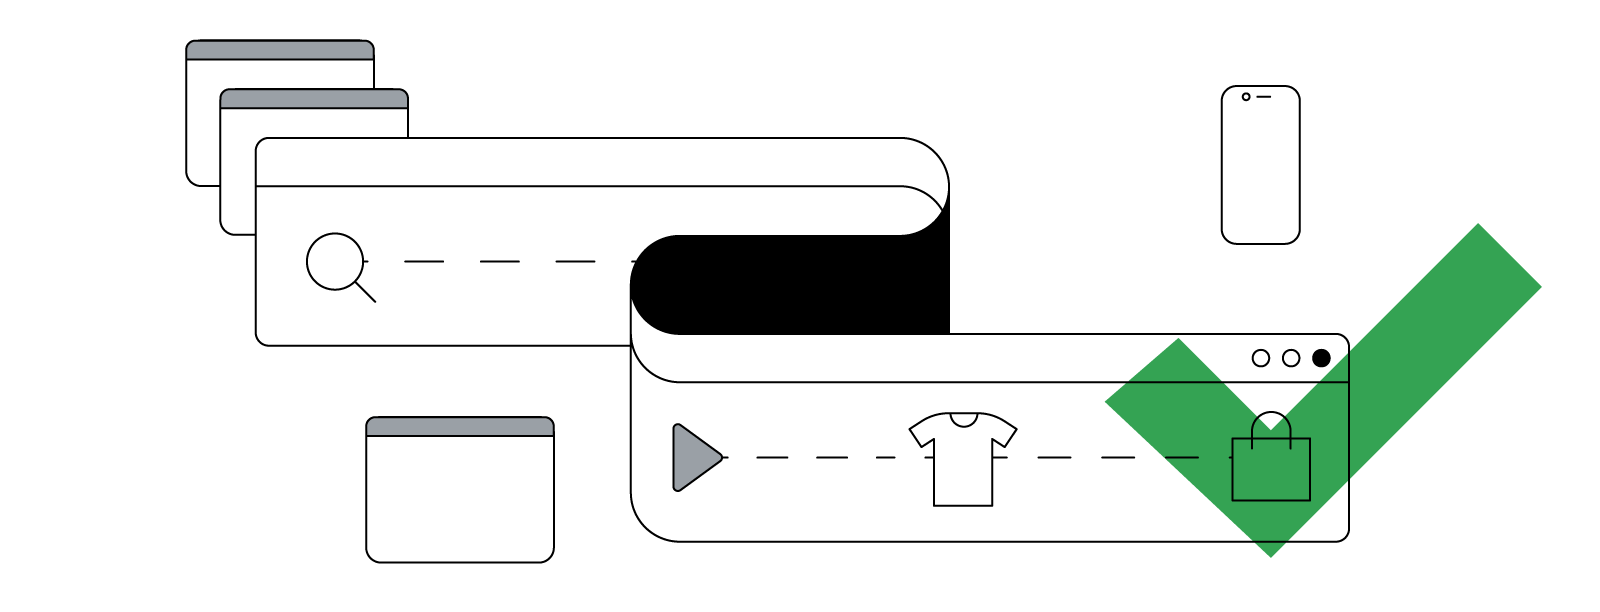 An abstract illustration of a flexing, curving browser window that shows the nonlinear consumer journey from research to purchase across devices.